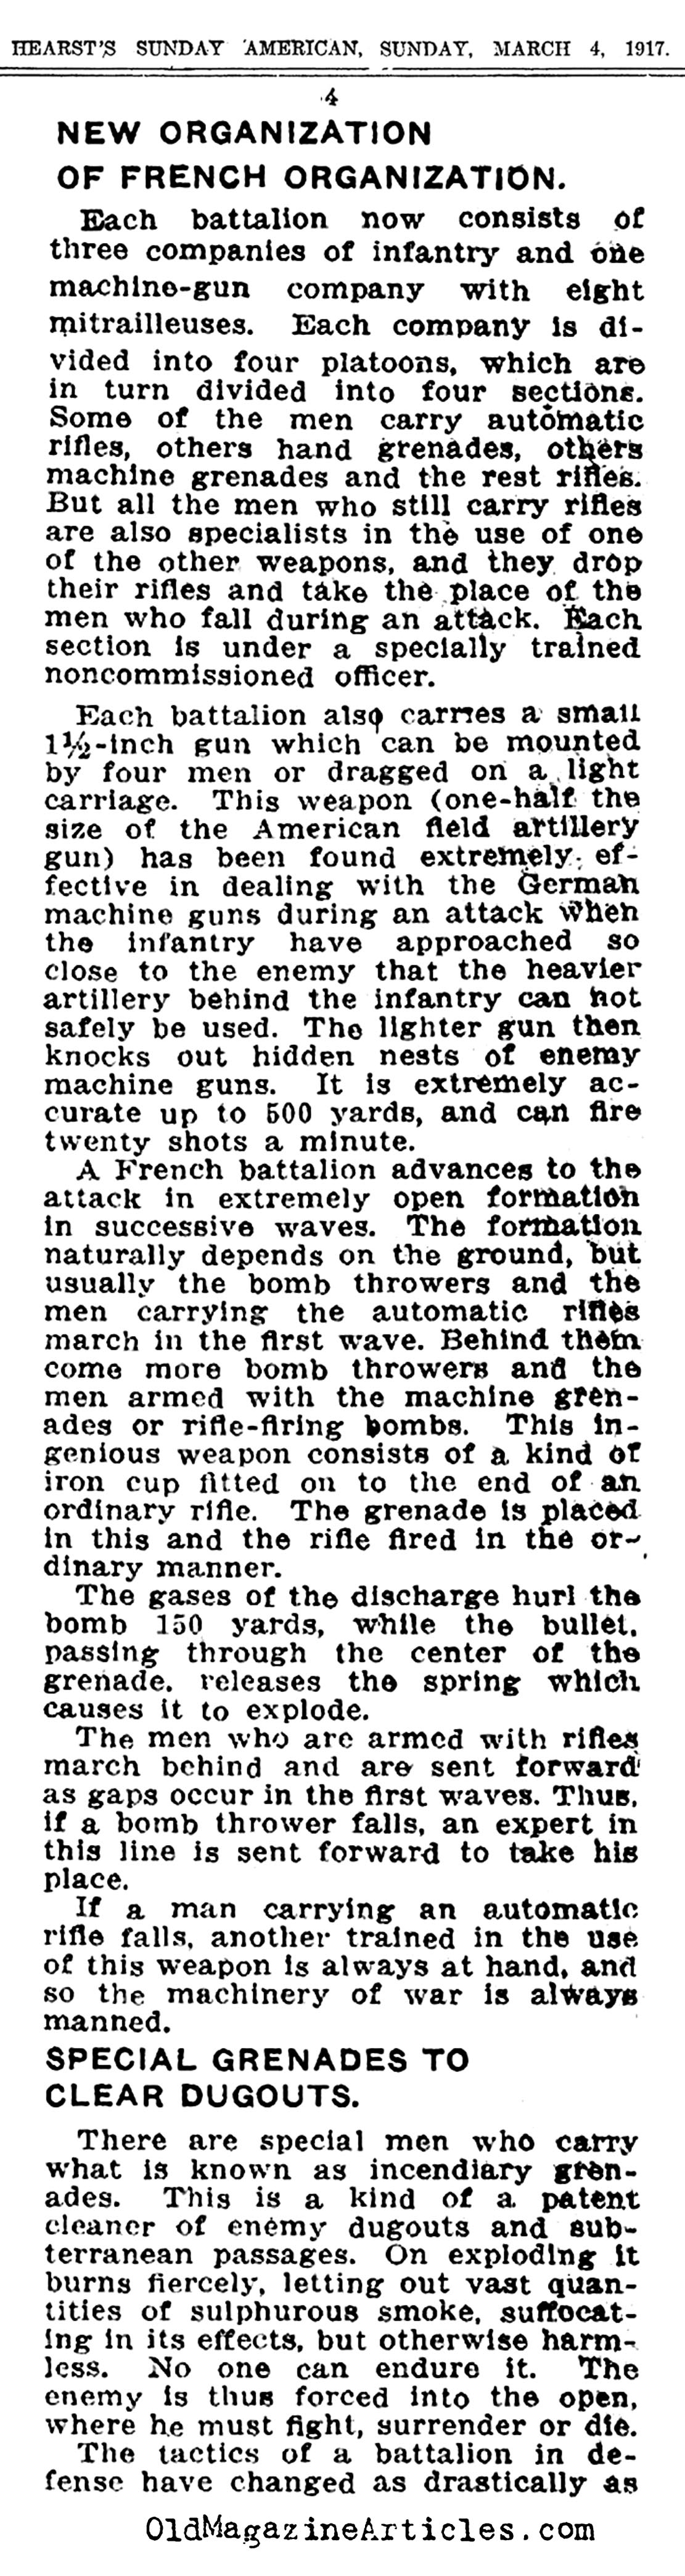 A War Like No Other  (Hearst's Sunday  American, 1917)